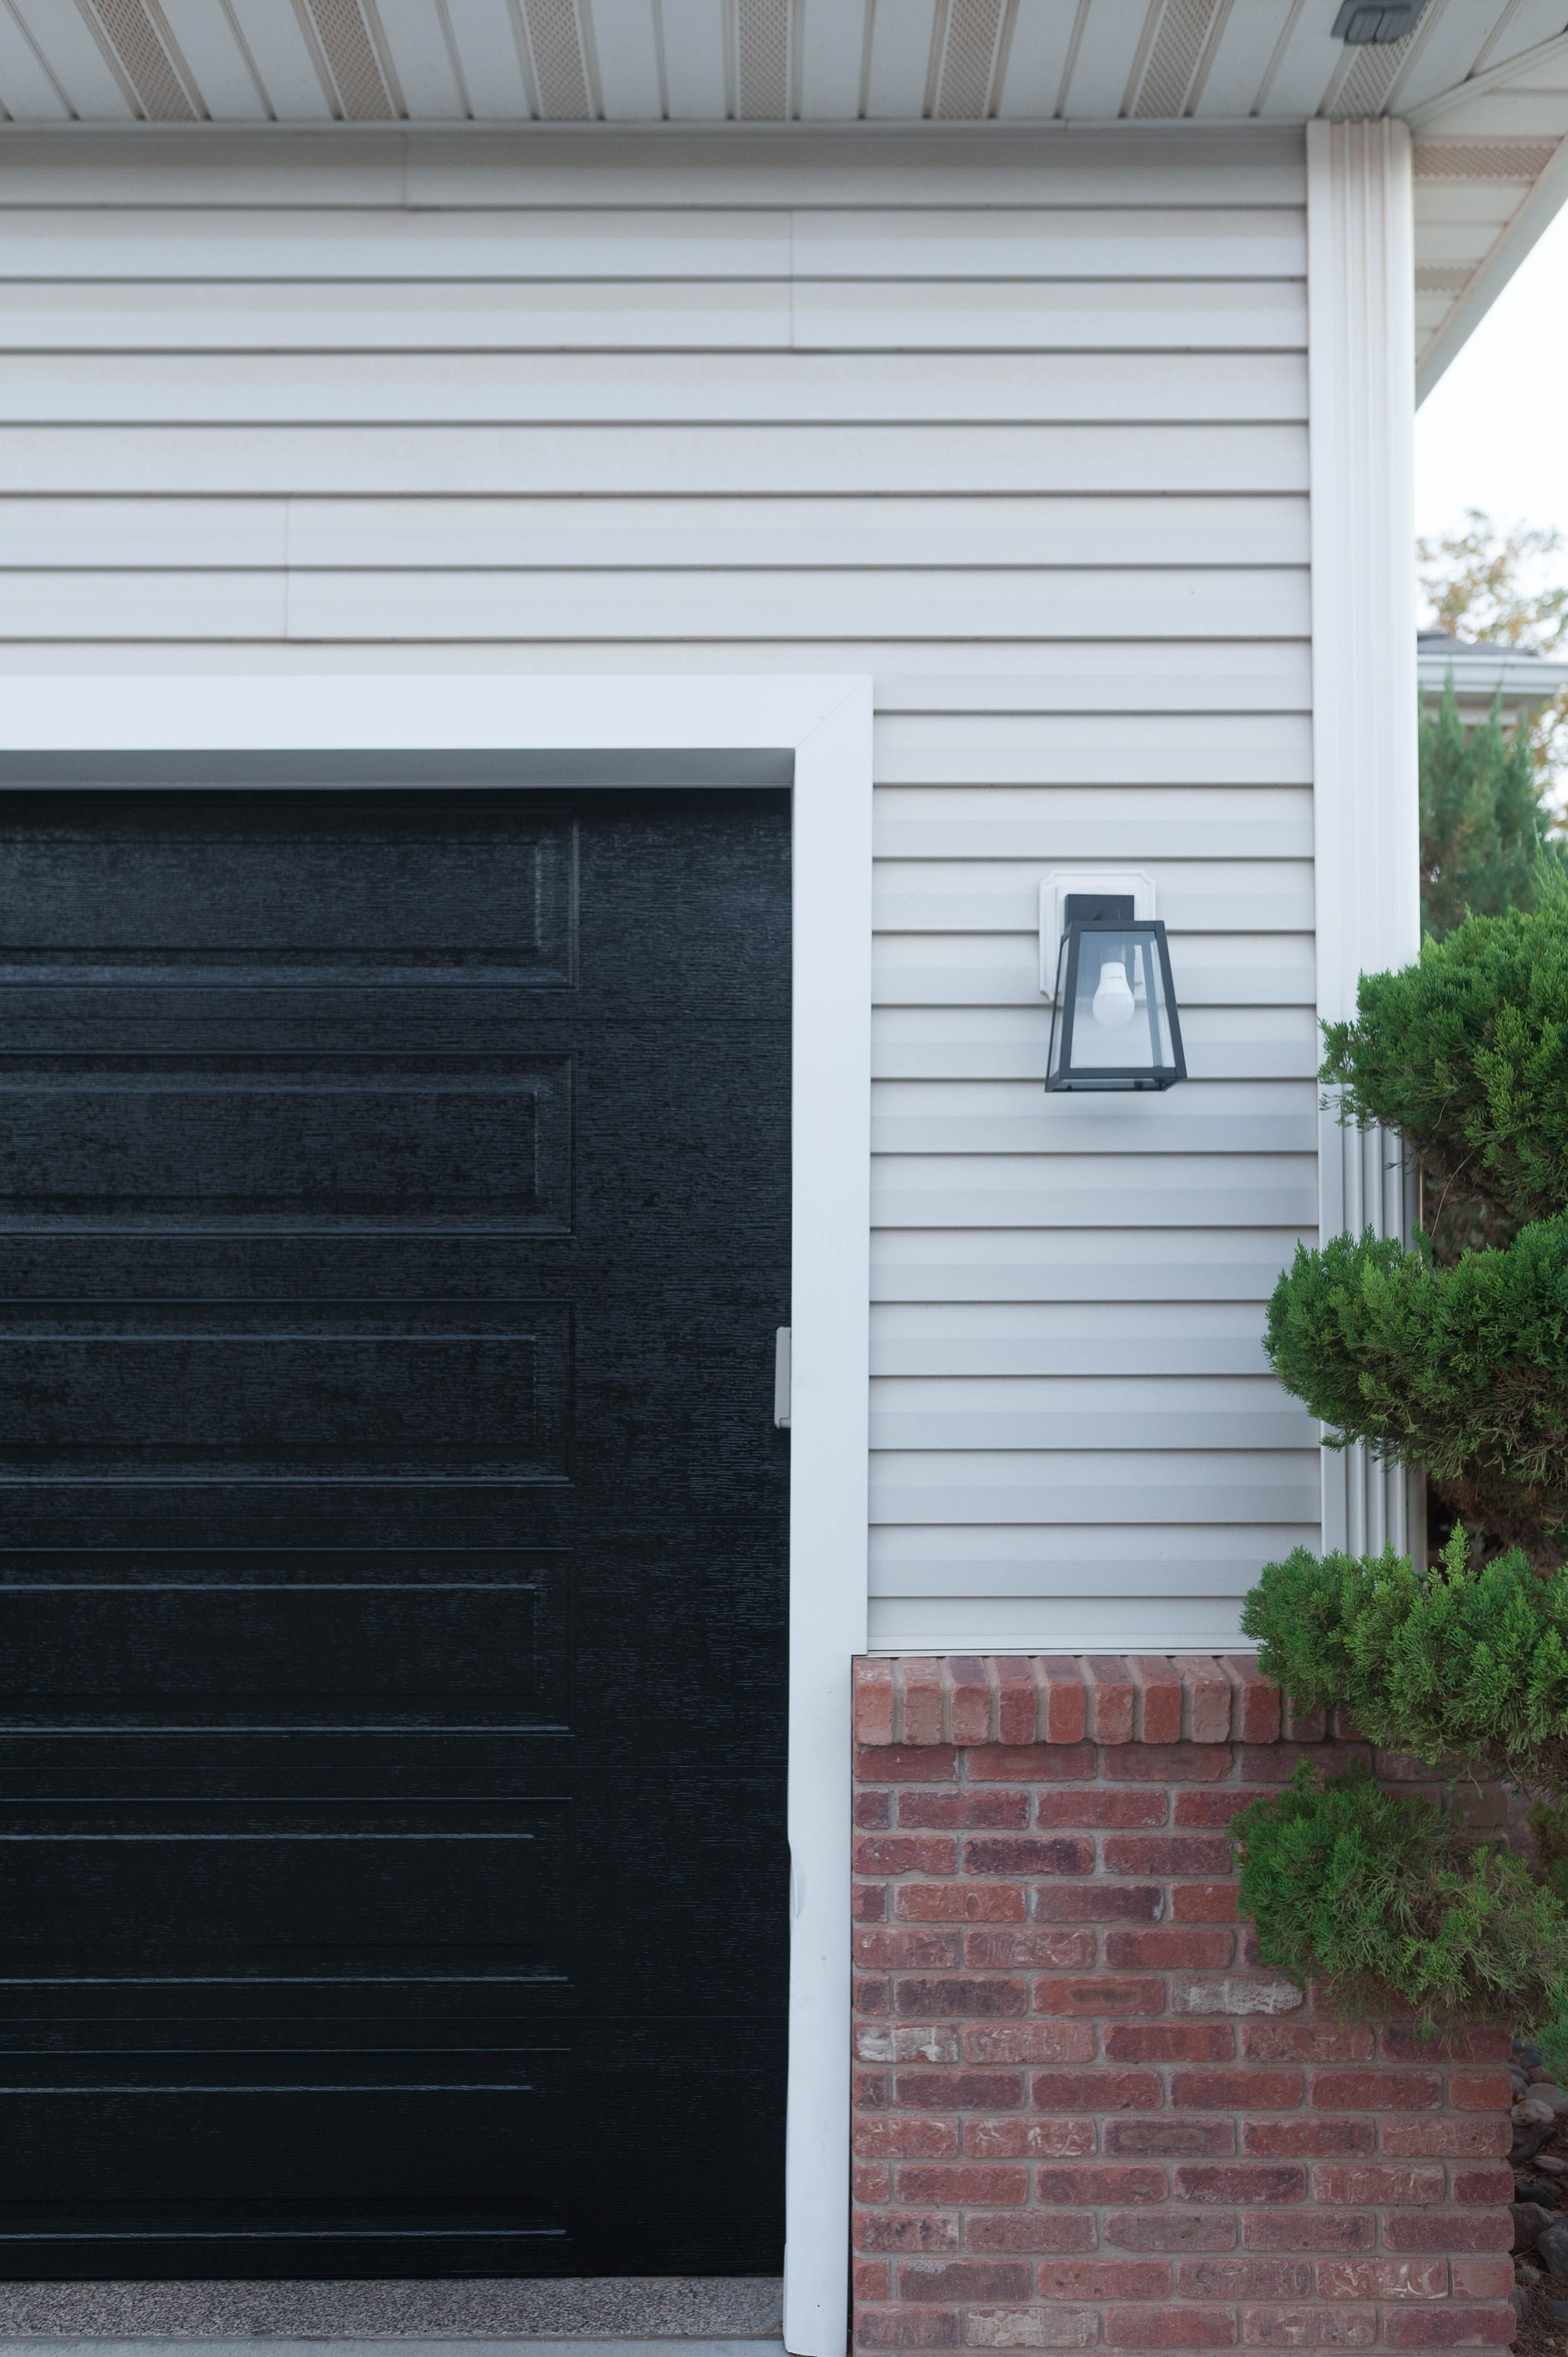 How To Paint Garage Doors With Turbo Spray Paint The Easy Way